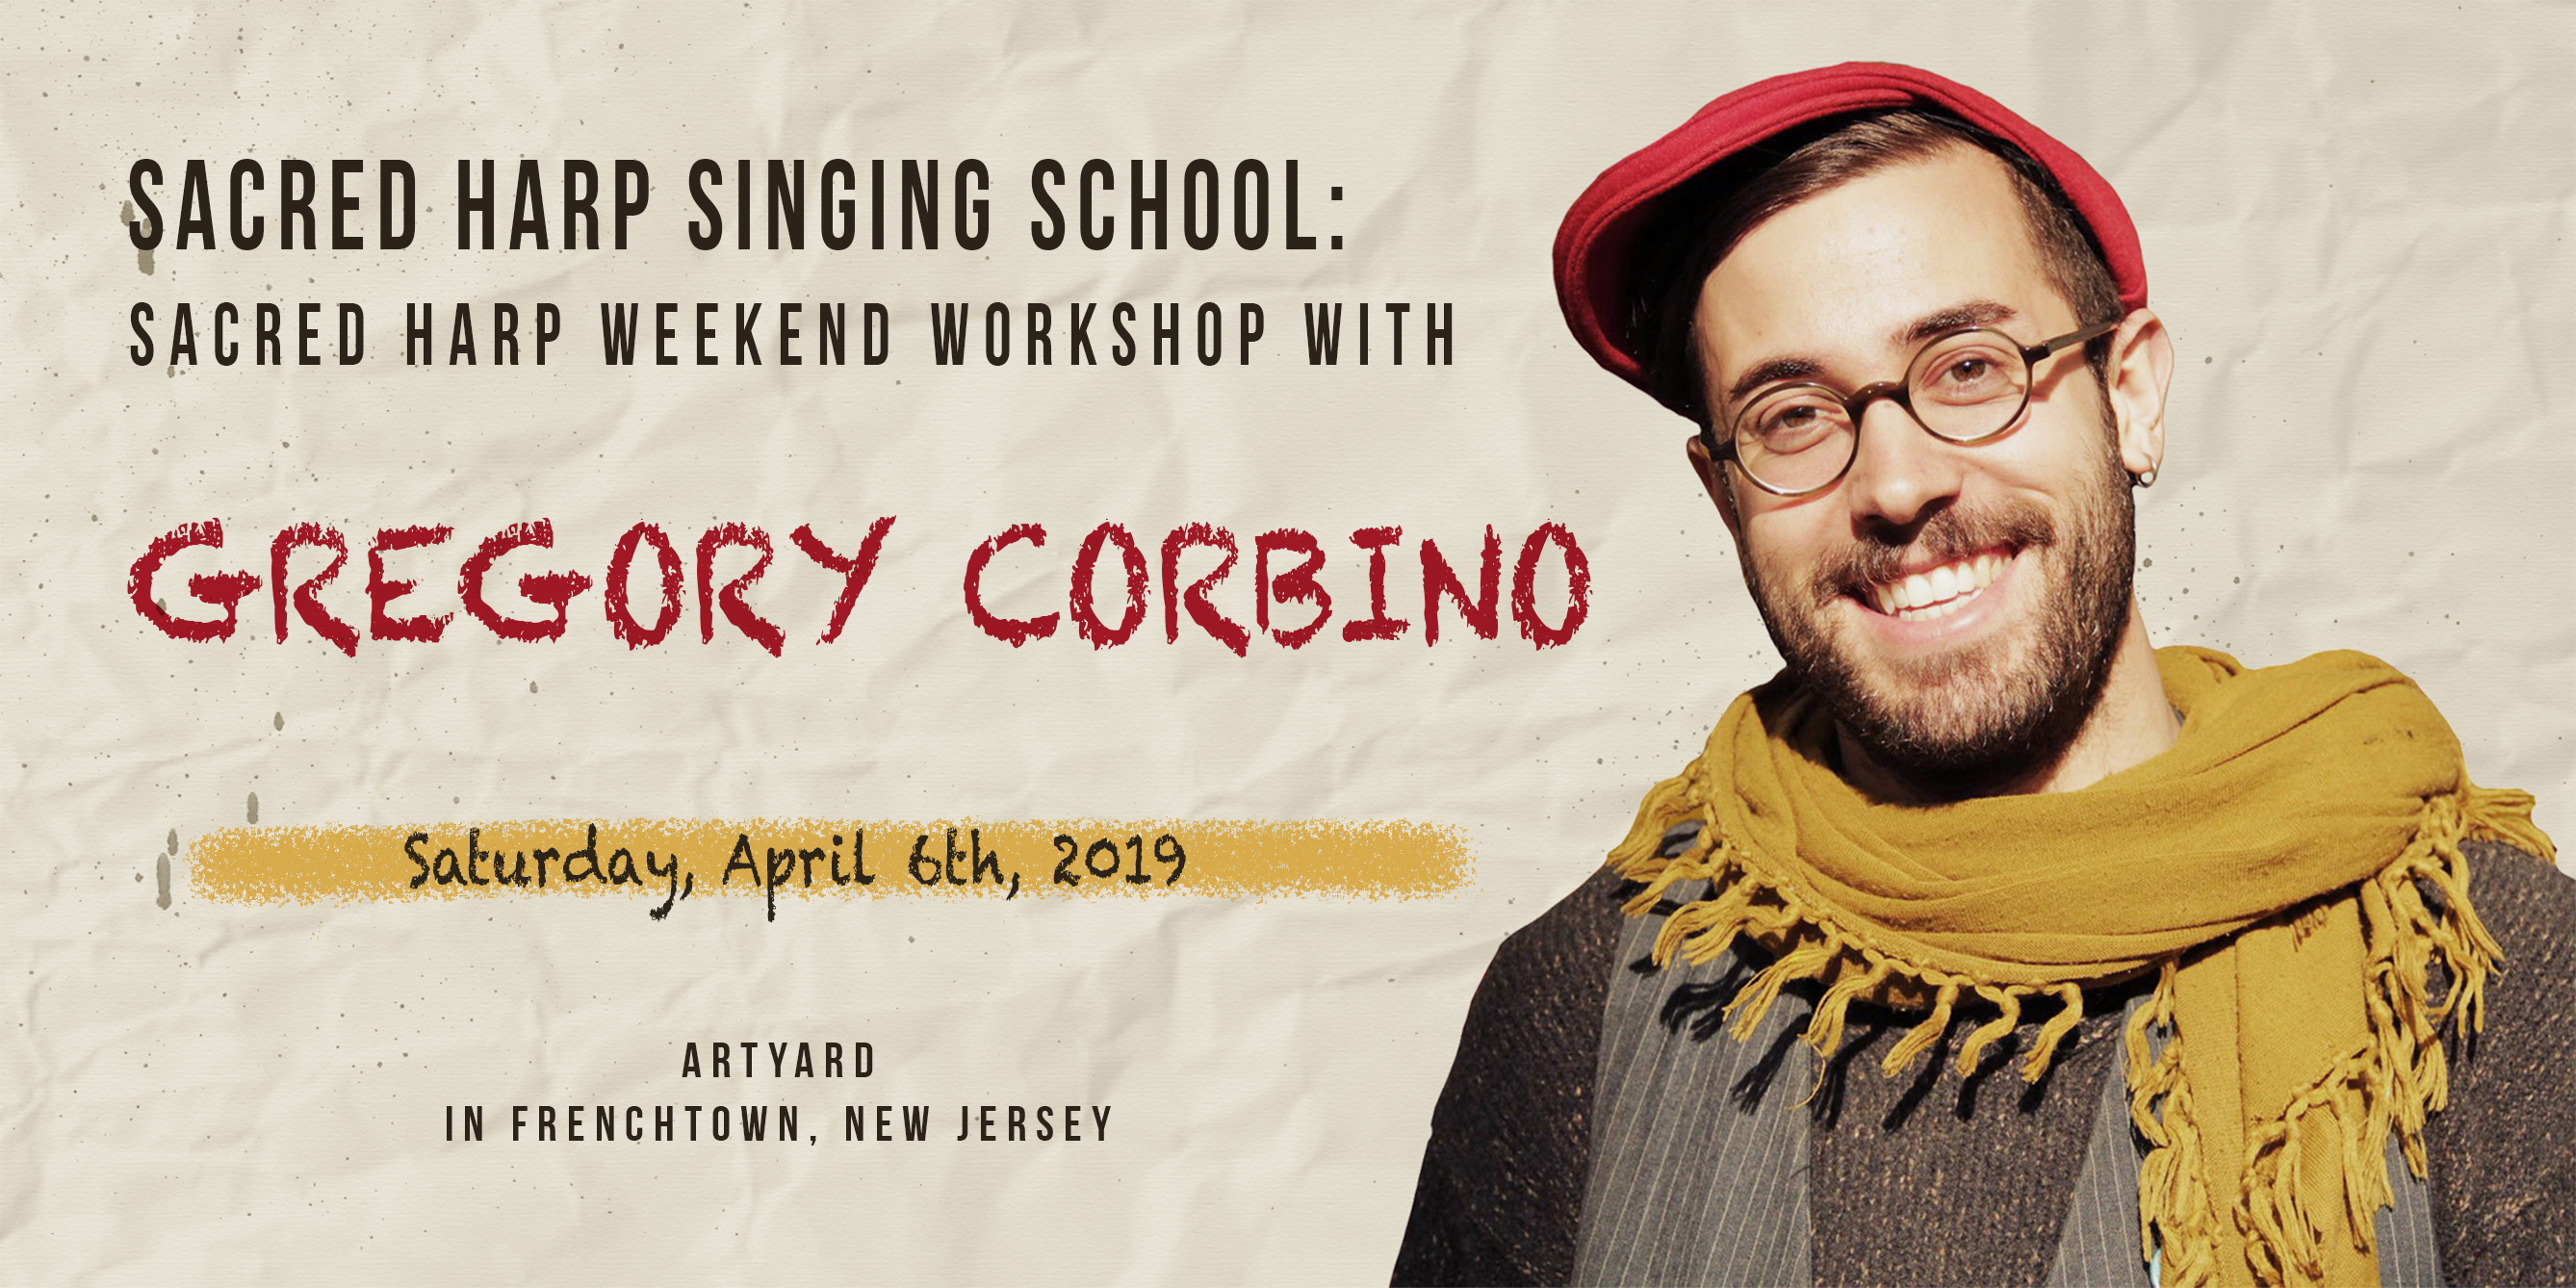 Sacred Heart Singing Weekend Workshop with Gregory Corbino (April) @ ArtYard's Theater | Frenchtown | New Jersey | United States